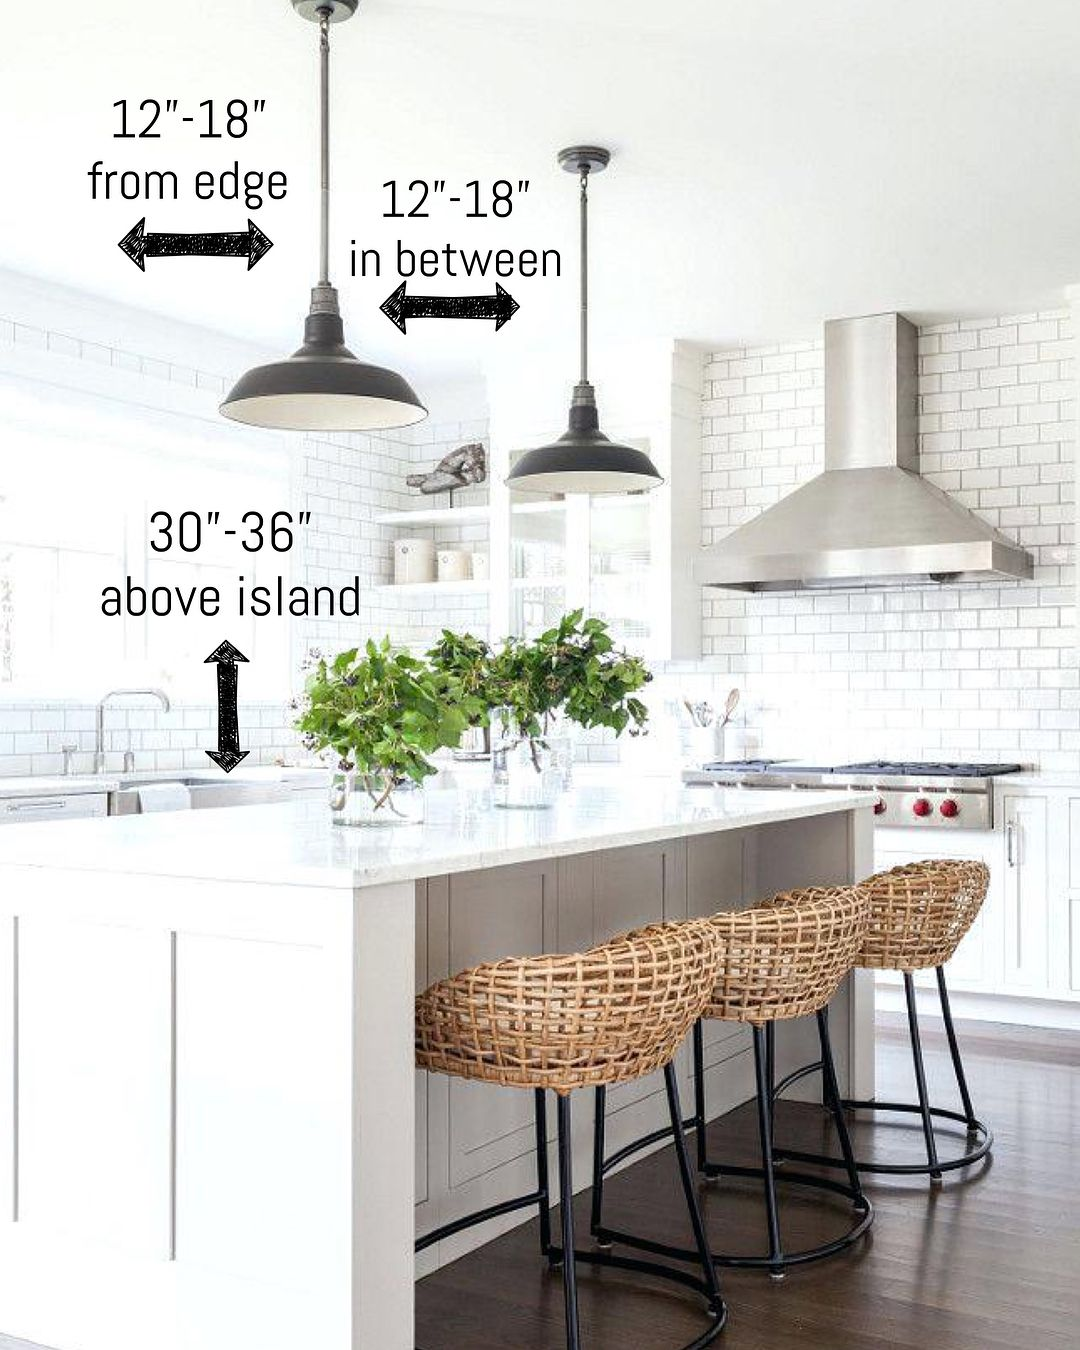 I absolutely love the look of pendant lights over kitchen islands